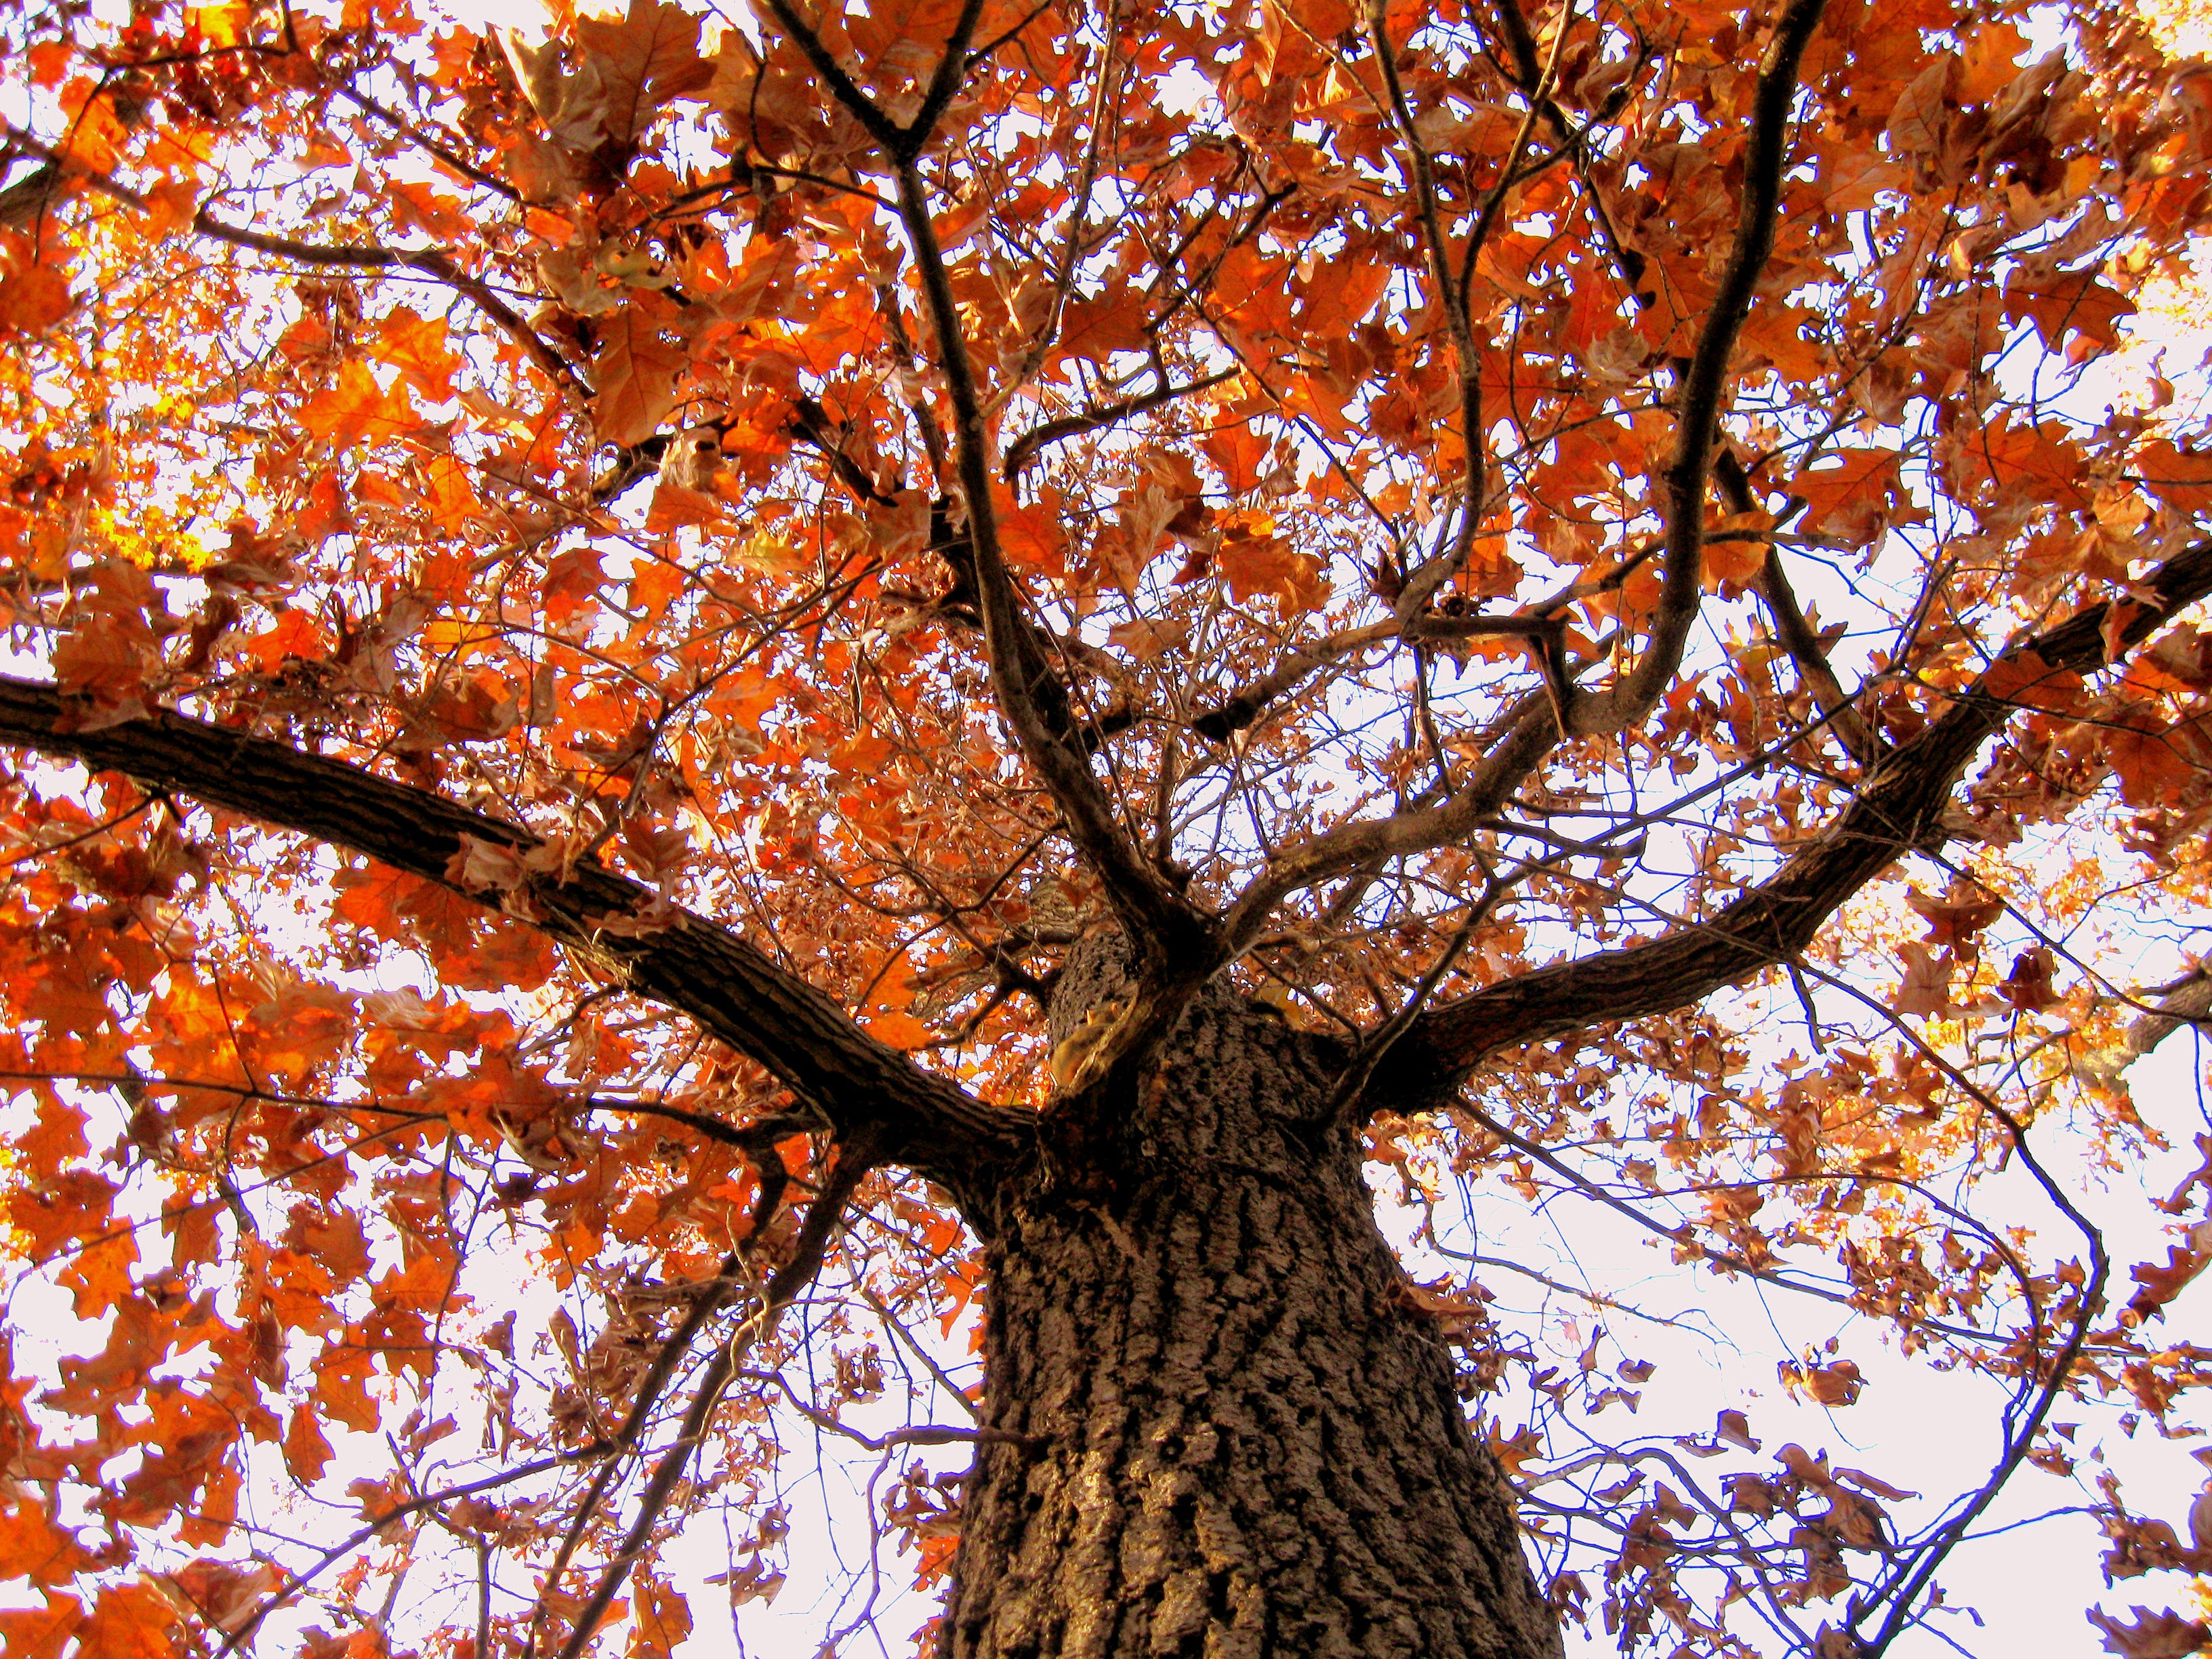 Free stock photo of tree, autumn, orange, autumn leaves